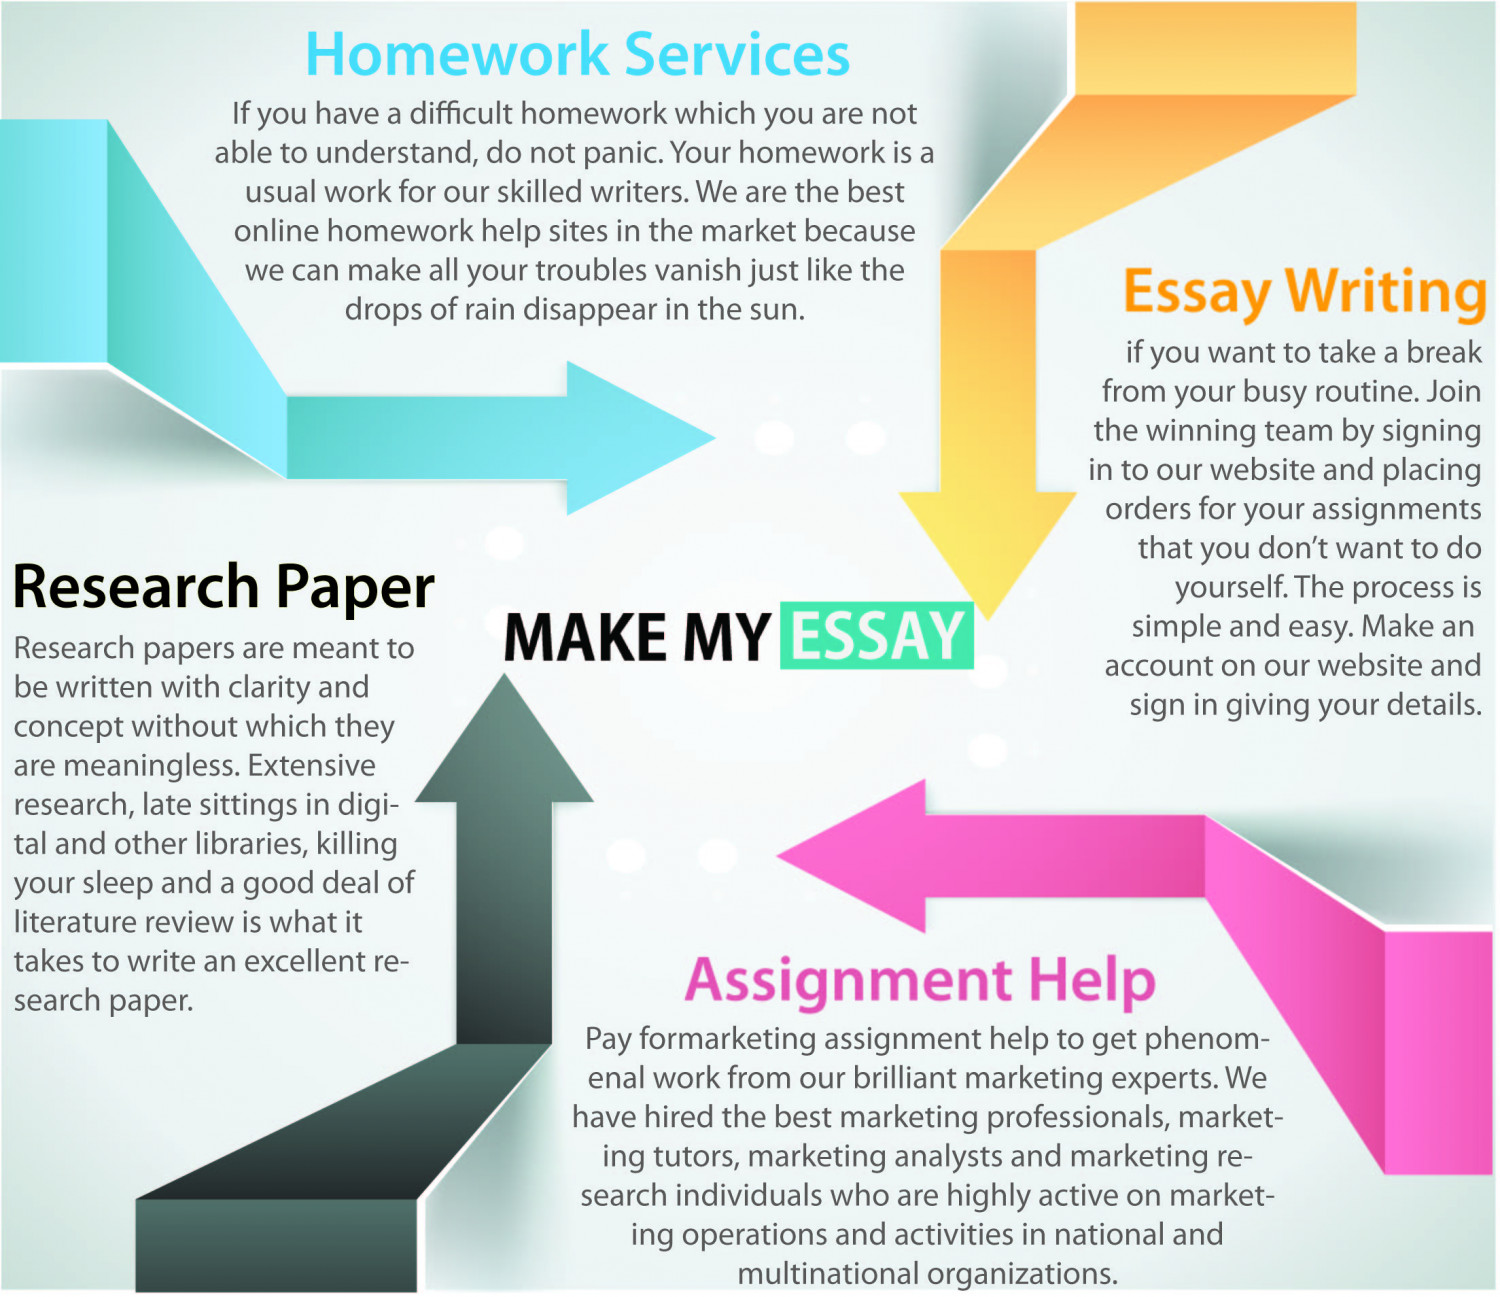 affordable write my essay aqa food technology coursework help posted by affordable write my essay 3 stars based on 587 reviews buy essay online order quality custom papers or other assignments on our academic